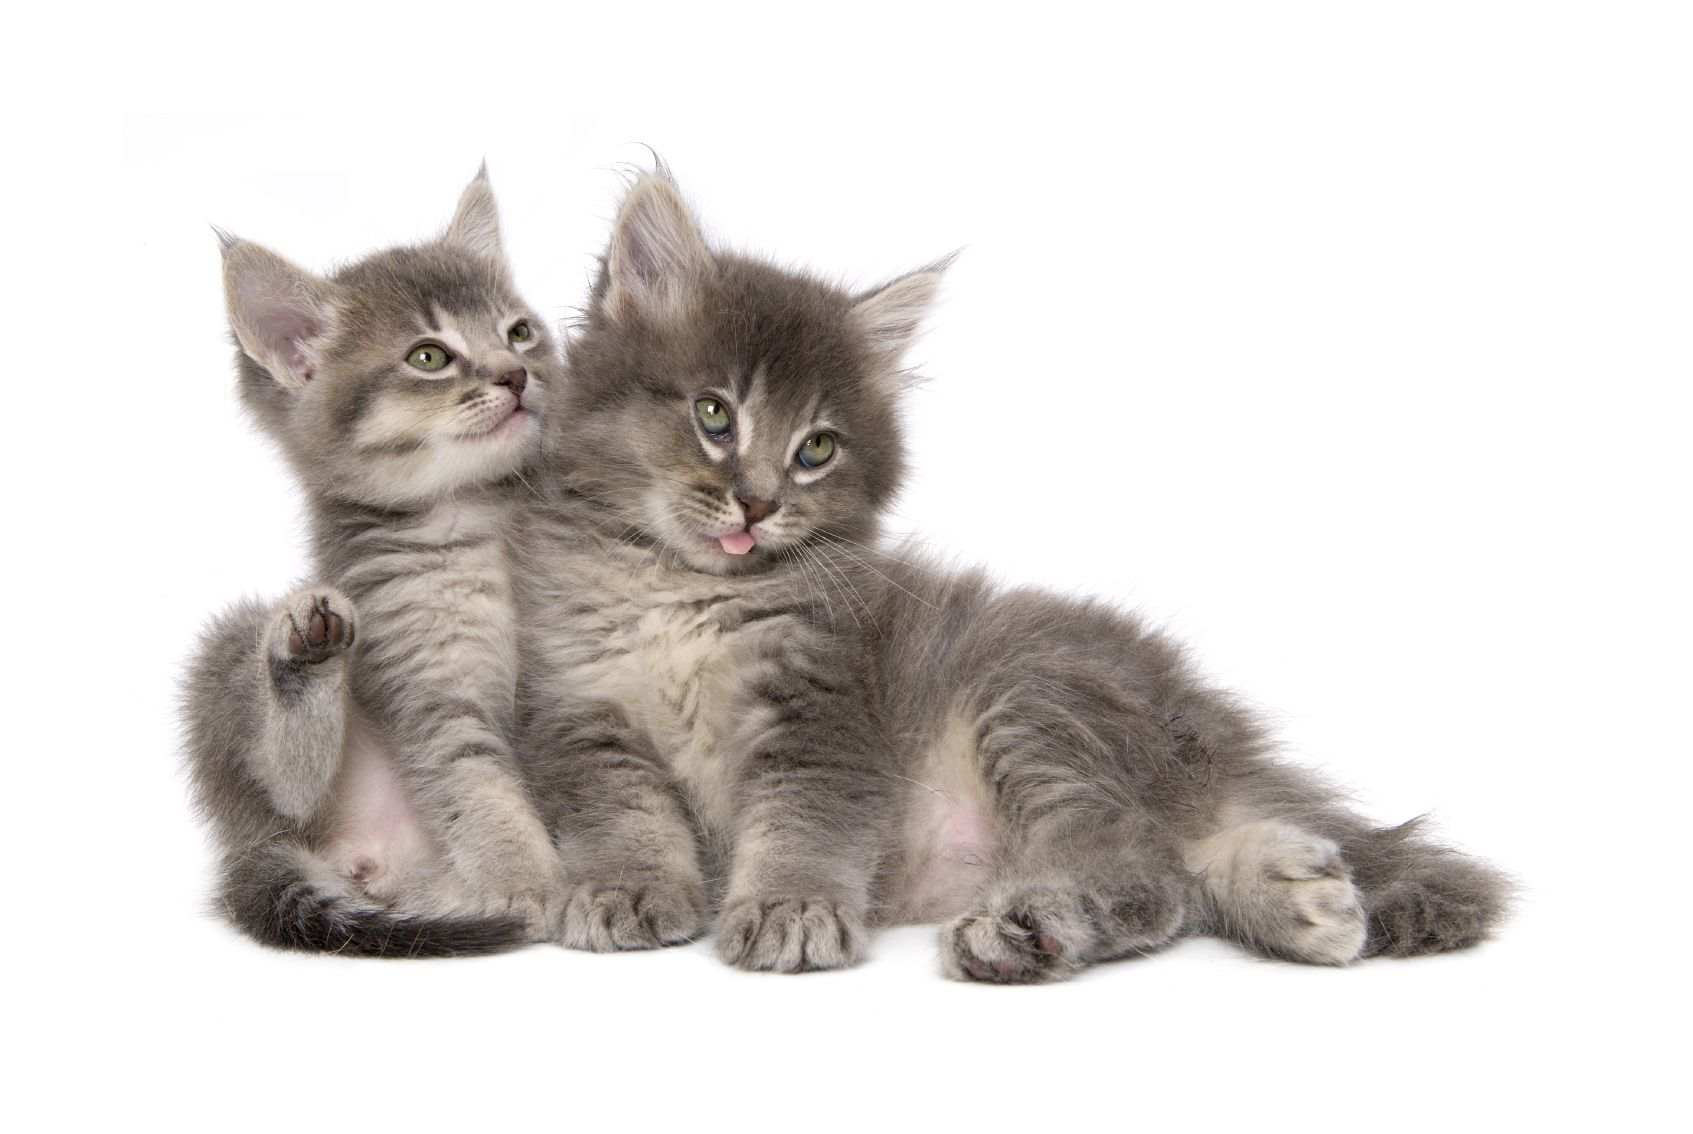 Oh The Joy Of A Kitten Or Two Or Three A Whole Litter Can Be Lots Of Fun But Oh Those Sharp Kitten Claws They Have Soft Paws Cats Cat